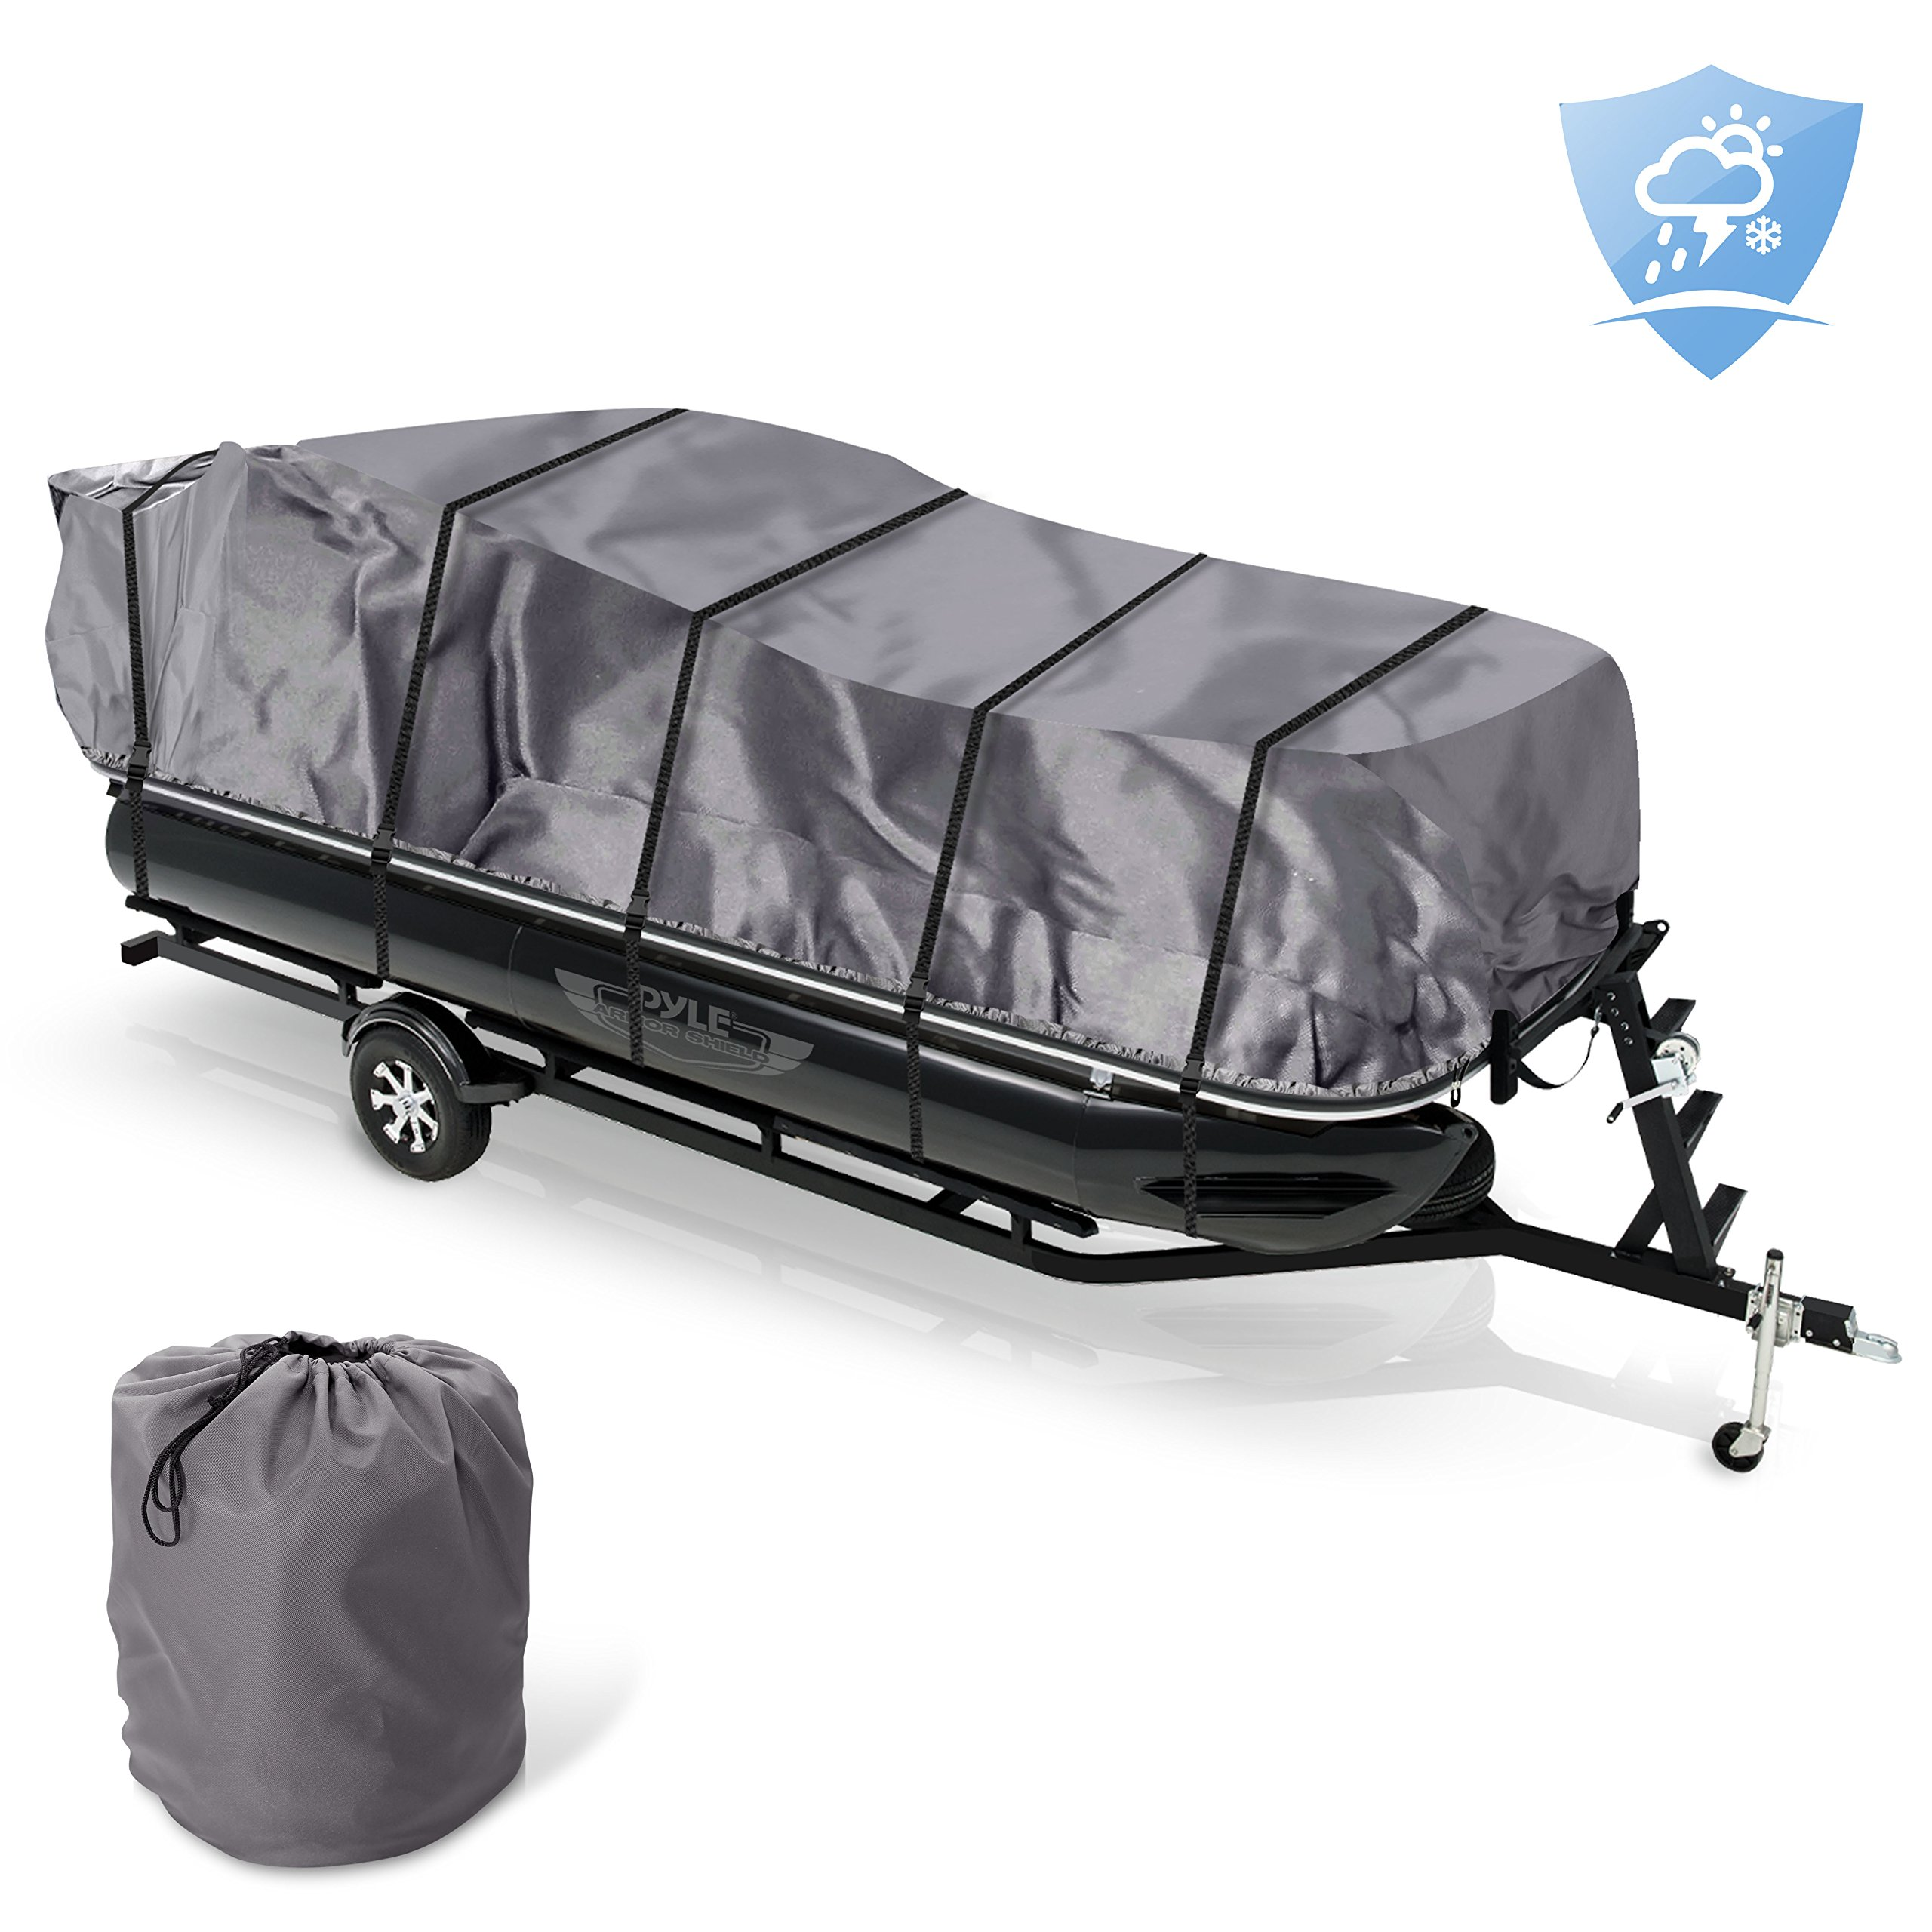 Pyle Protective Storage Boat Cover - Universal Waterproof, Mildew and Weather Resistant with UV Sun Damage Protection Armor Shield Marine Grade Canvas for 25 to 28ft Trailer Pontoon - PCVHP662